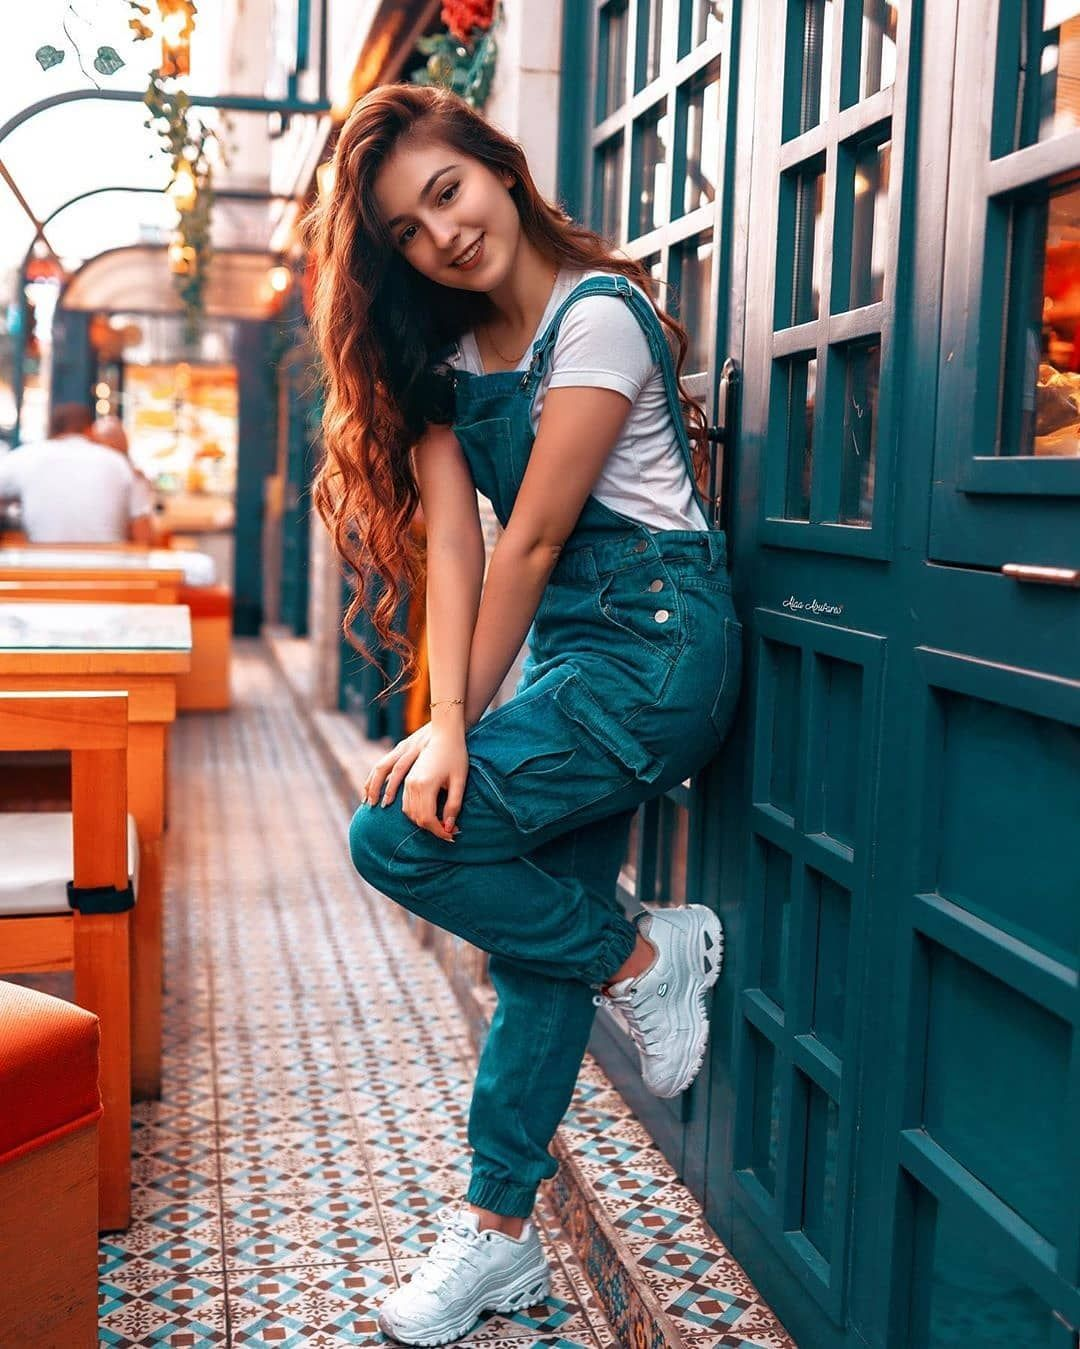 3 731 Likes 87 Comments صور بنات كيوت 5 5 M On Instagram العراق اربيل بغداد بصرة موصل اكس Fashion Casual Wear Dress Girl Photography Poses